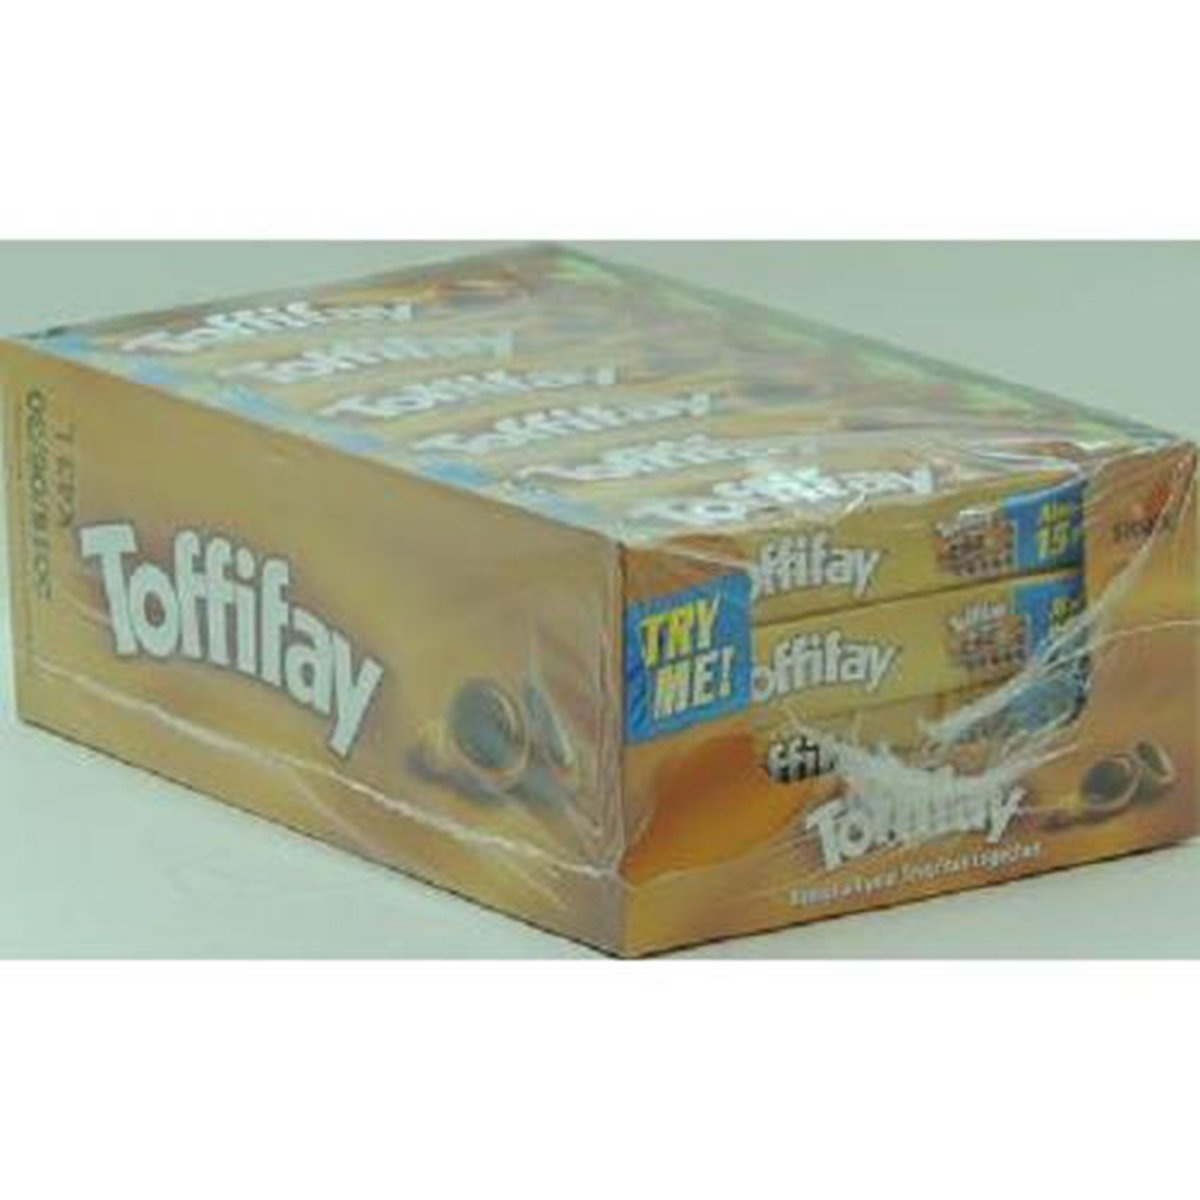 Product Of Toffifay, Hazelnut Chewy Caramel , Count 21 (1.16 oz ) - Chocolate Candy / Grab Varieties & Flavors by Product Of Toffifay